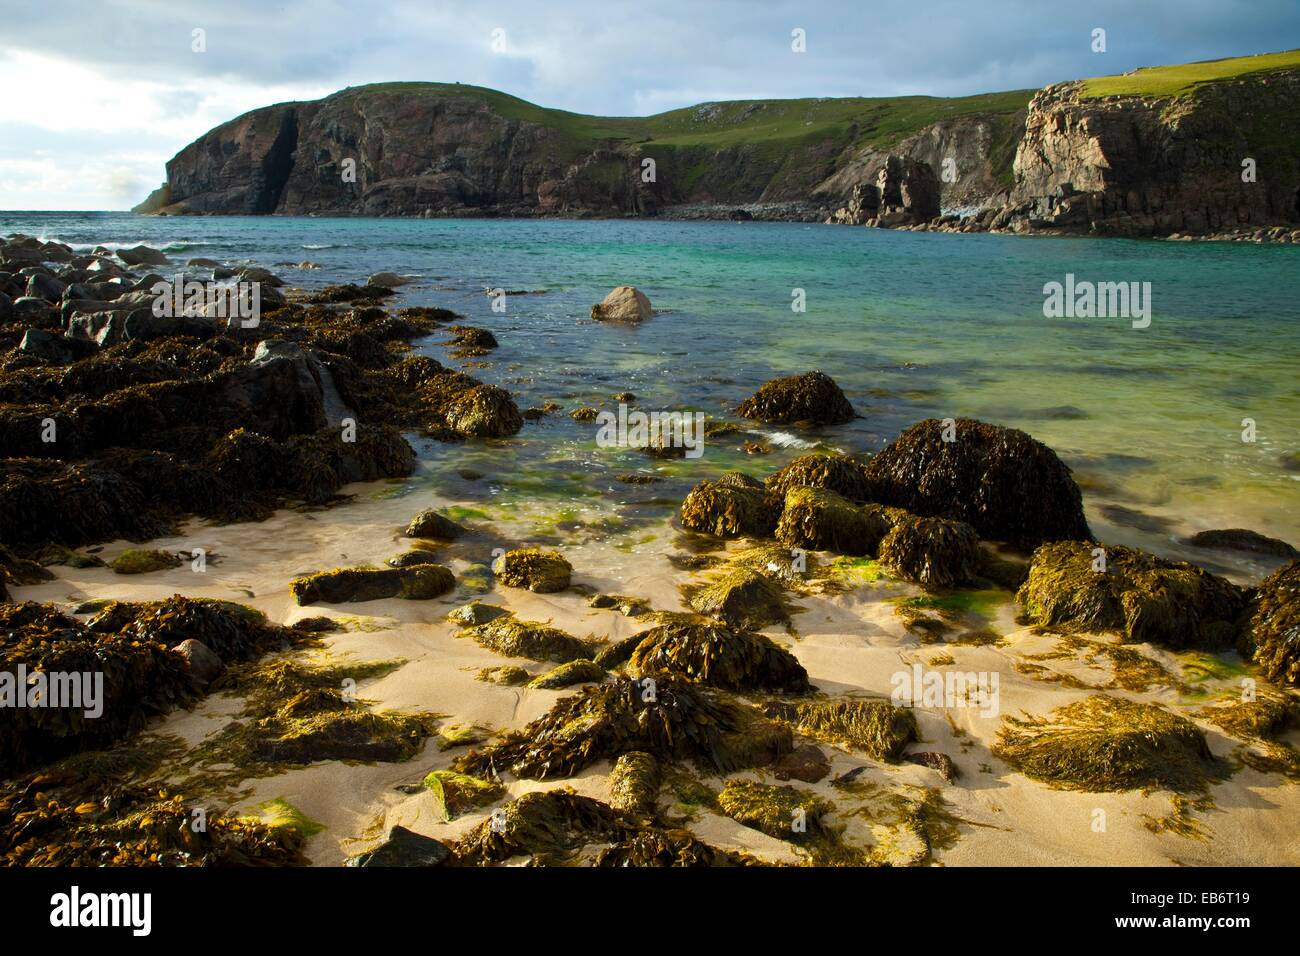 the imagery of the island of lewis in scotland Welcome to the isle of lewis the isle of lewis is at the north west corner of the group of islands known as the hebrides, or western isles the hebrides are known as the long islands as they stretch for 100 miles.